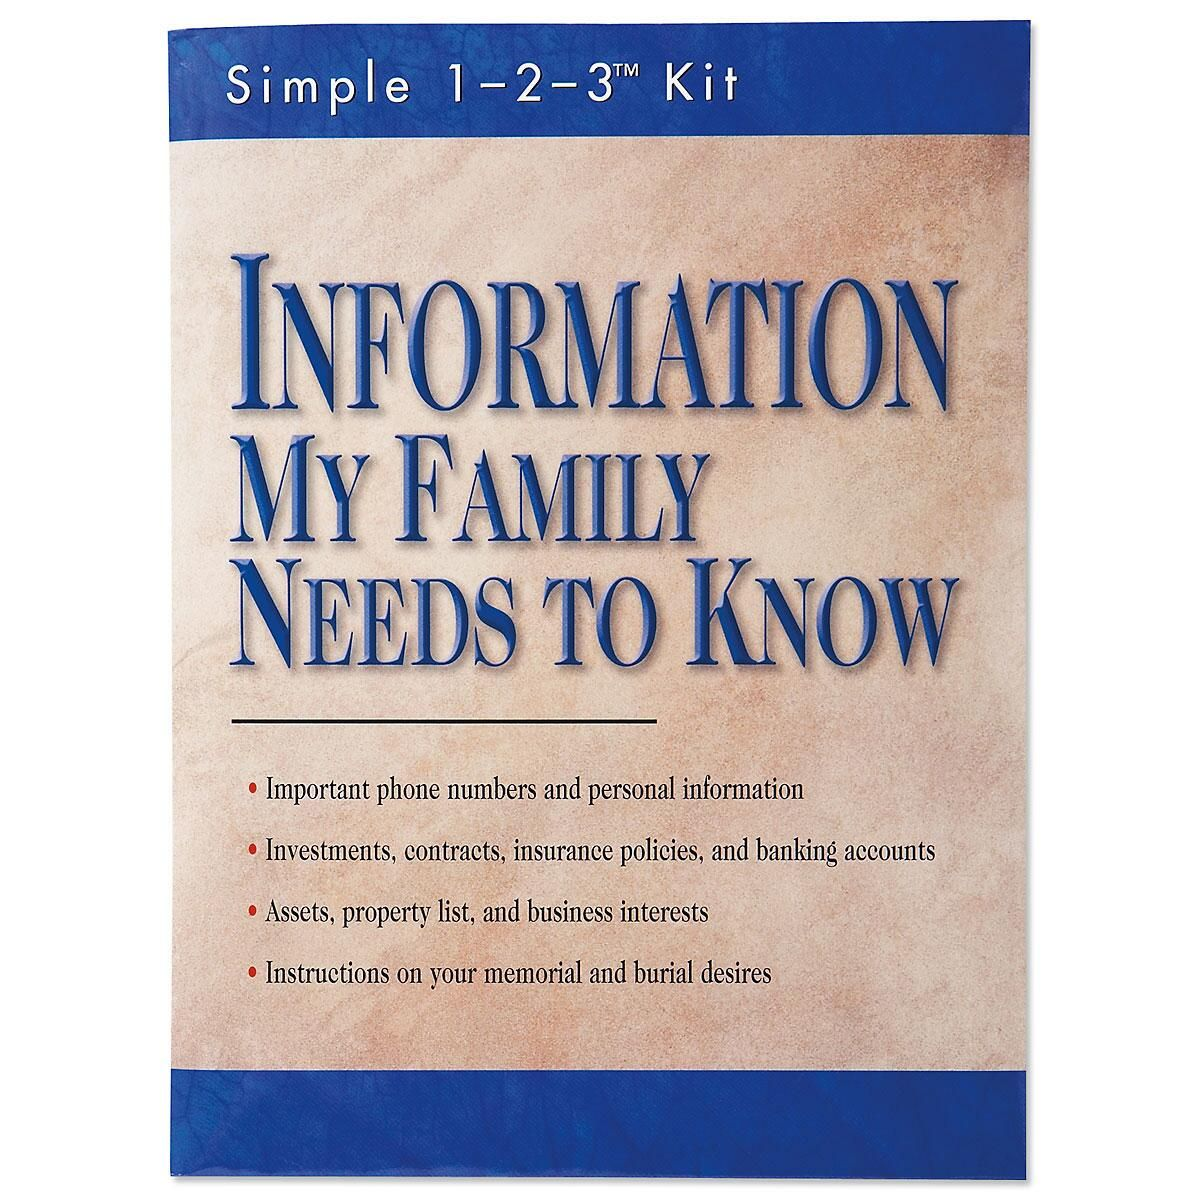 Information My Family Needs to Know Kit